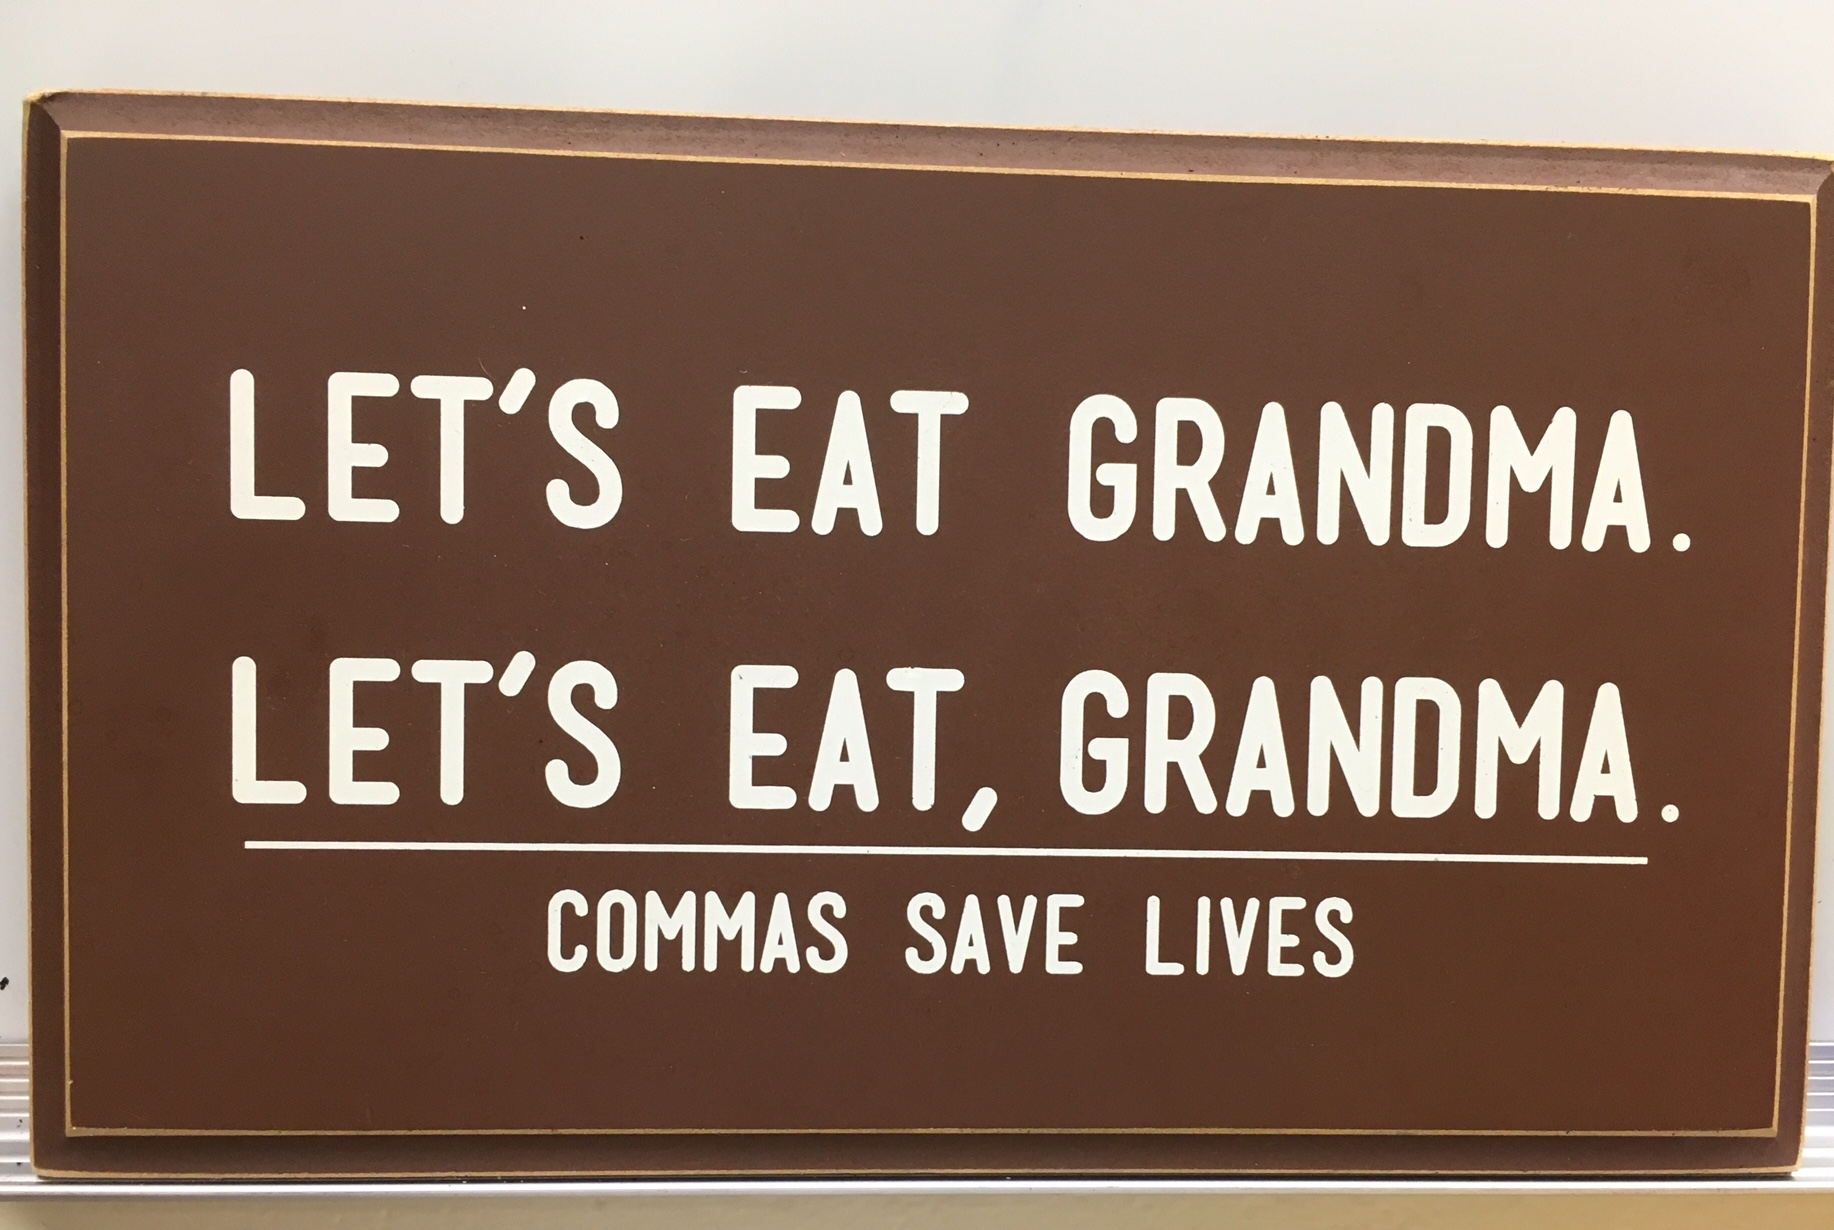 Commas save lives . . .